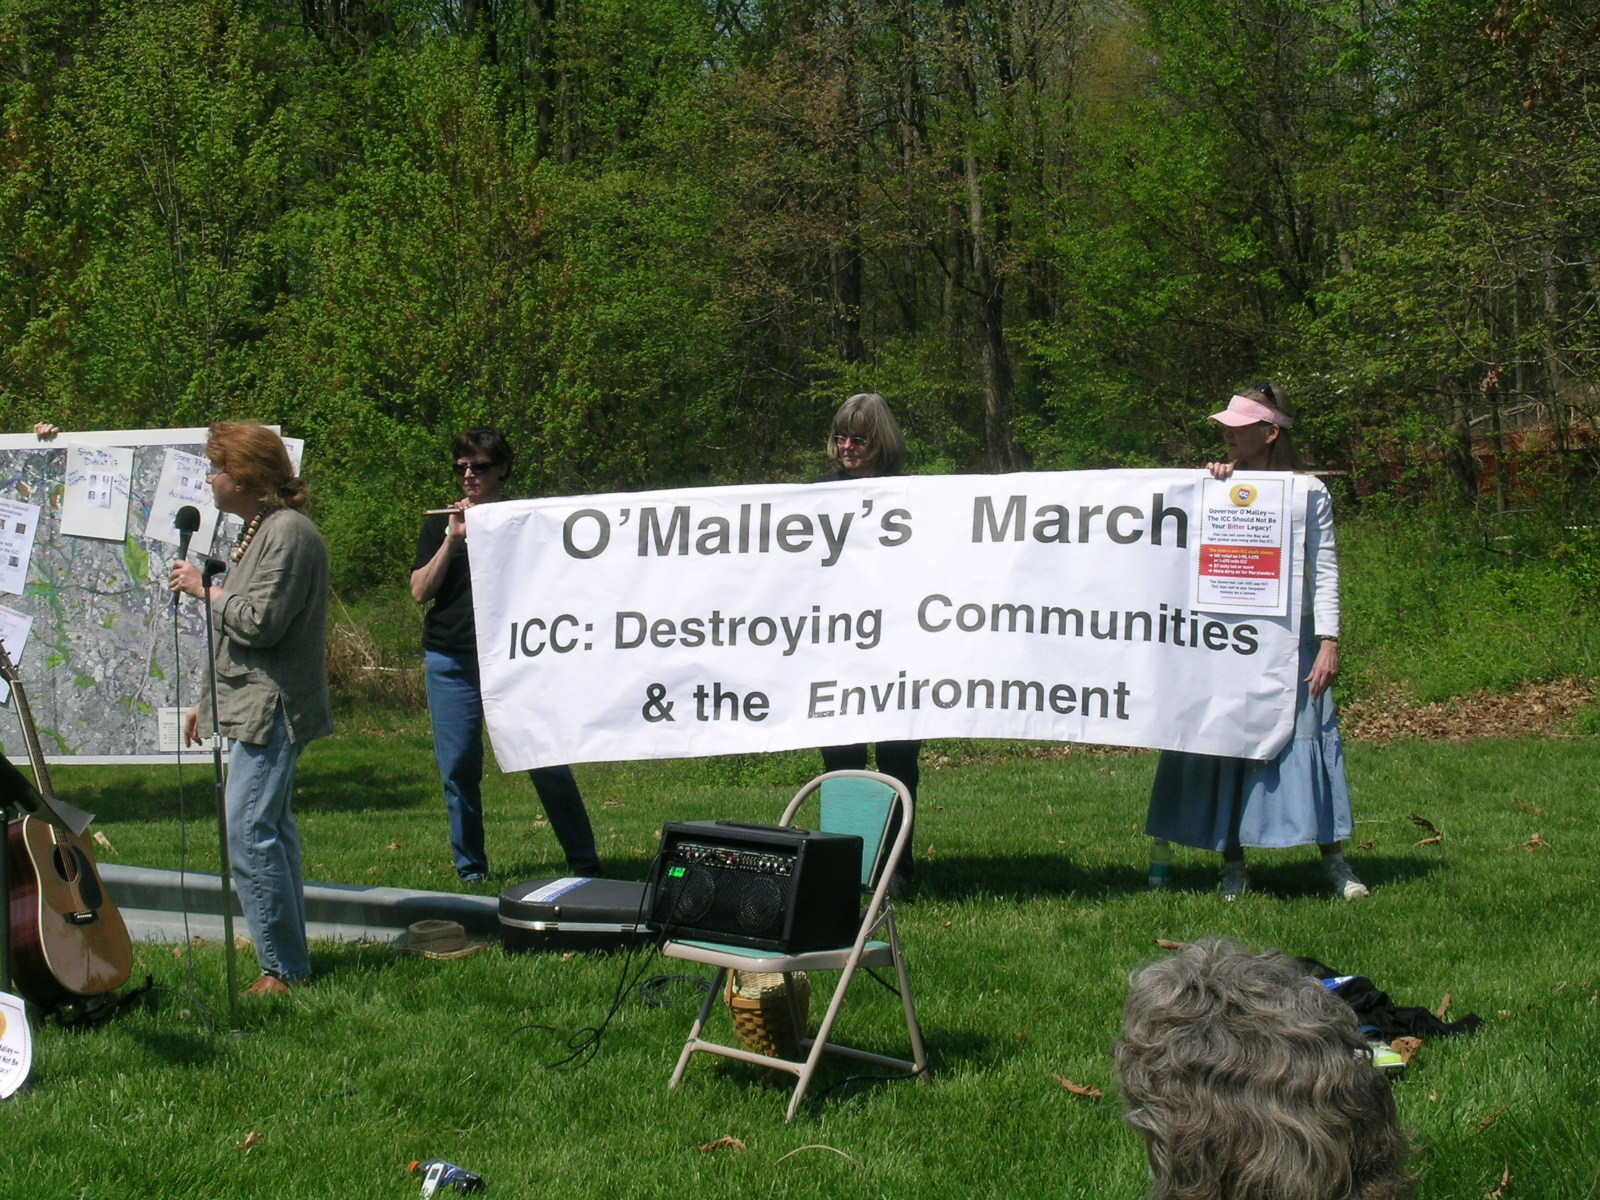 O'Malley's March destroys